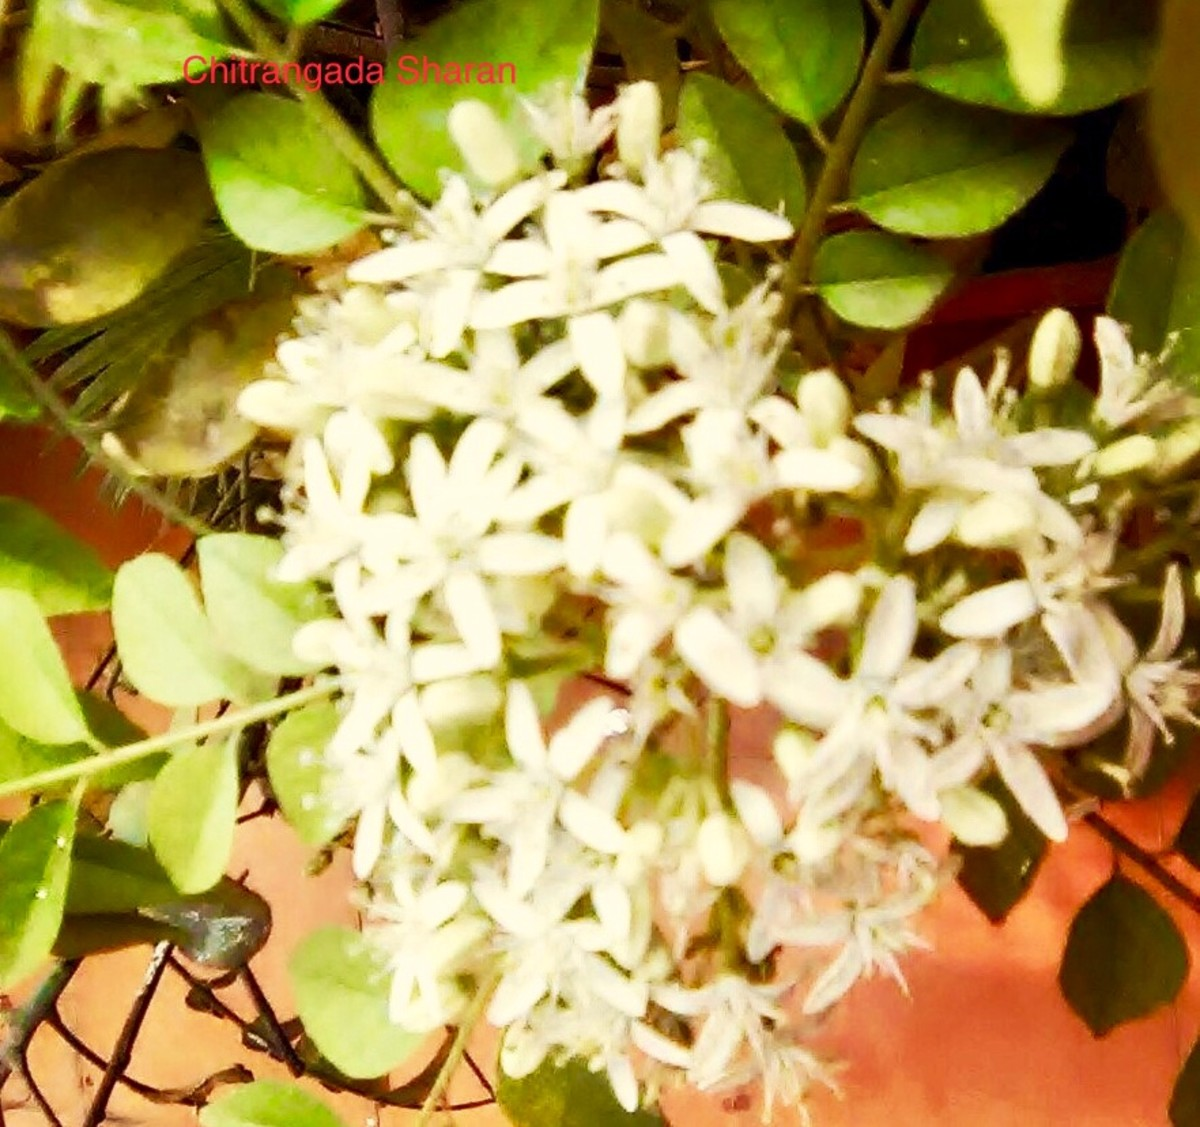 The colour white signifies purity and innocence—White flowers blossom on a curry plant